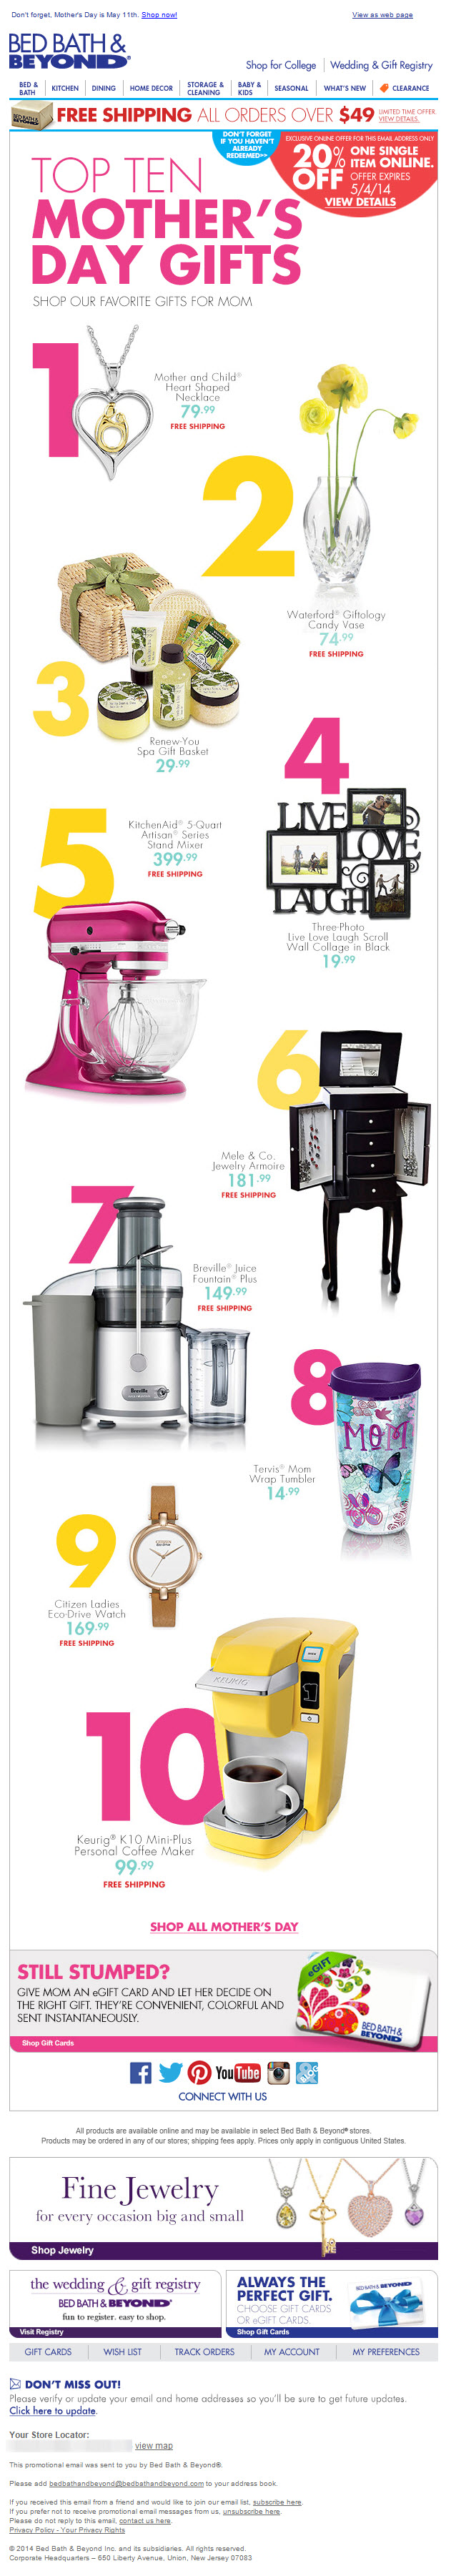 Sent 4 22 14 Sl Top 10 Gifts Mom Will Love Your 20 Offer Is